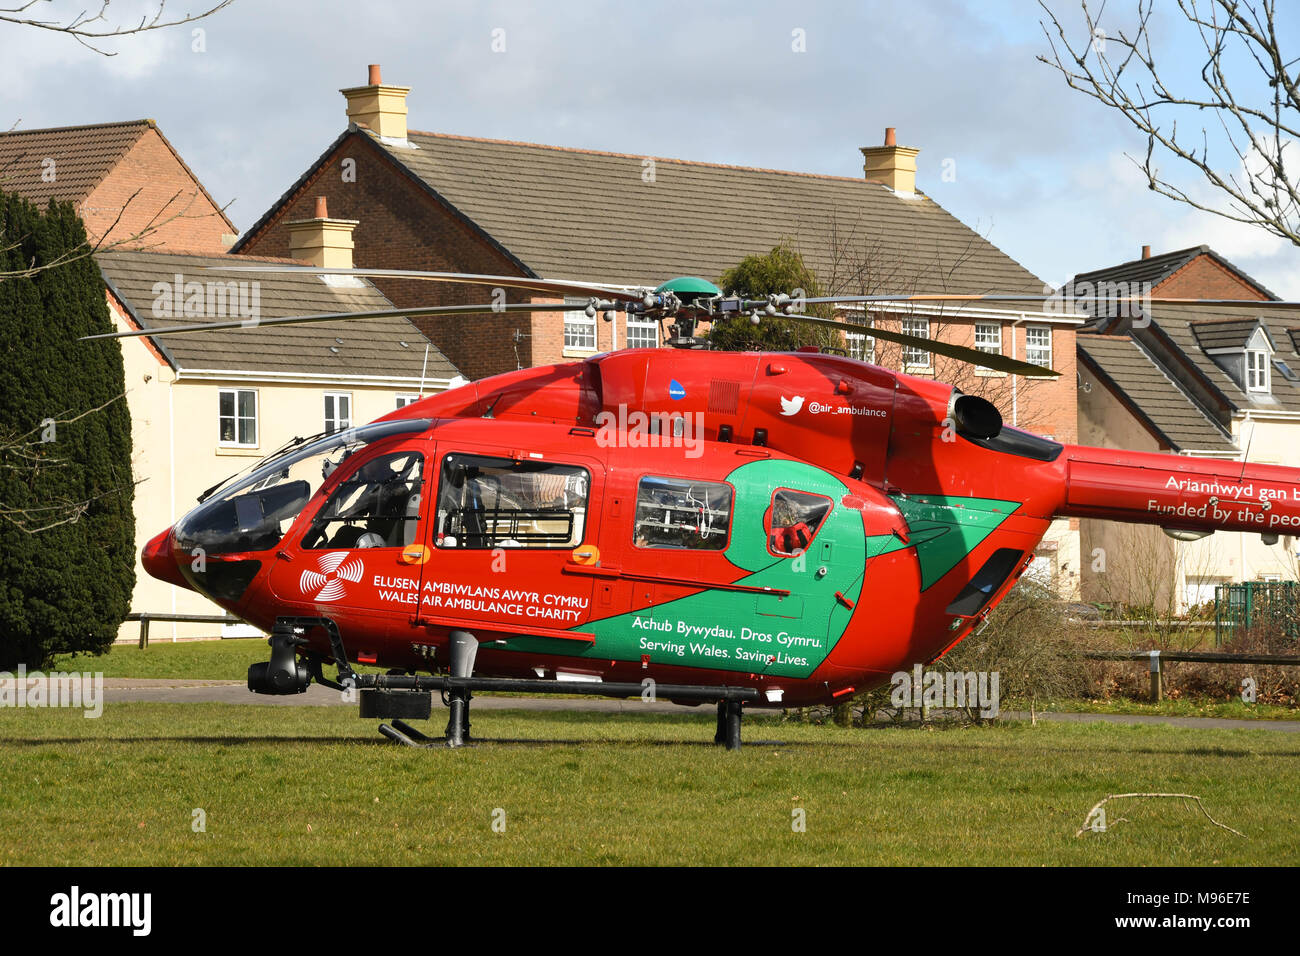 Airbus helicopter of the Wales Air Ambulance service After landing in a housing estate on an emergency mission - Stock Image